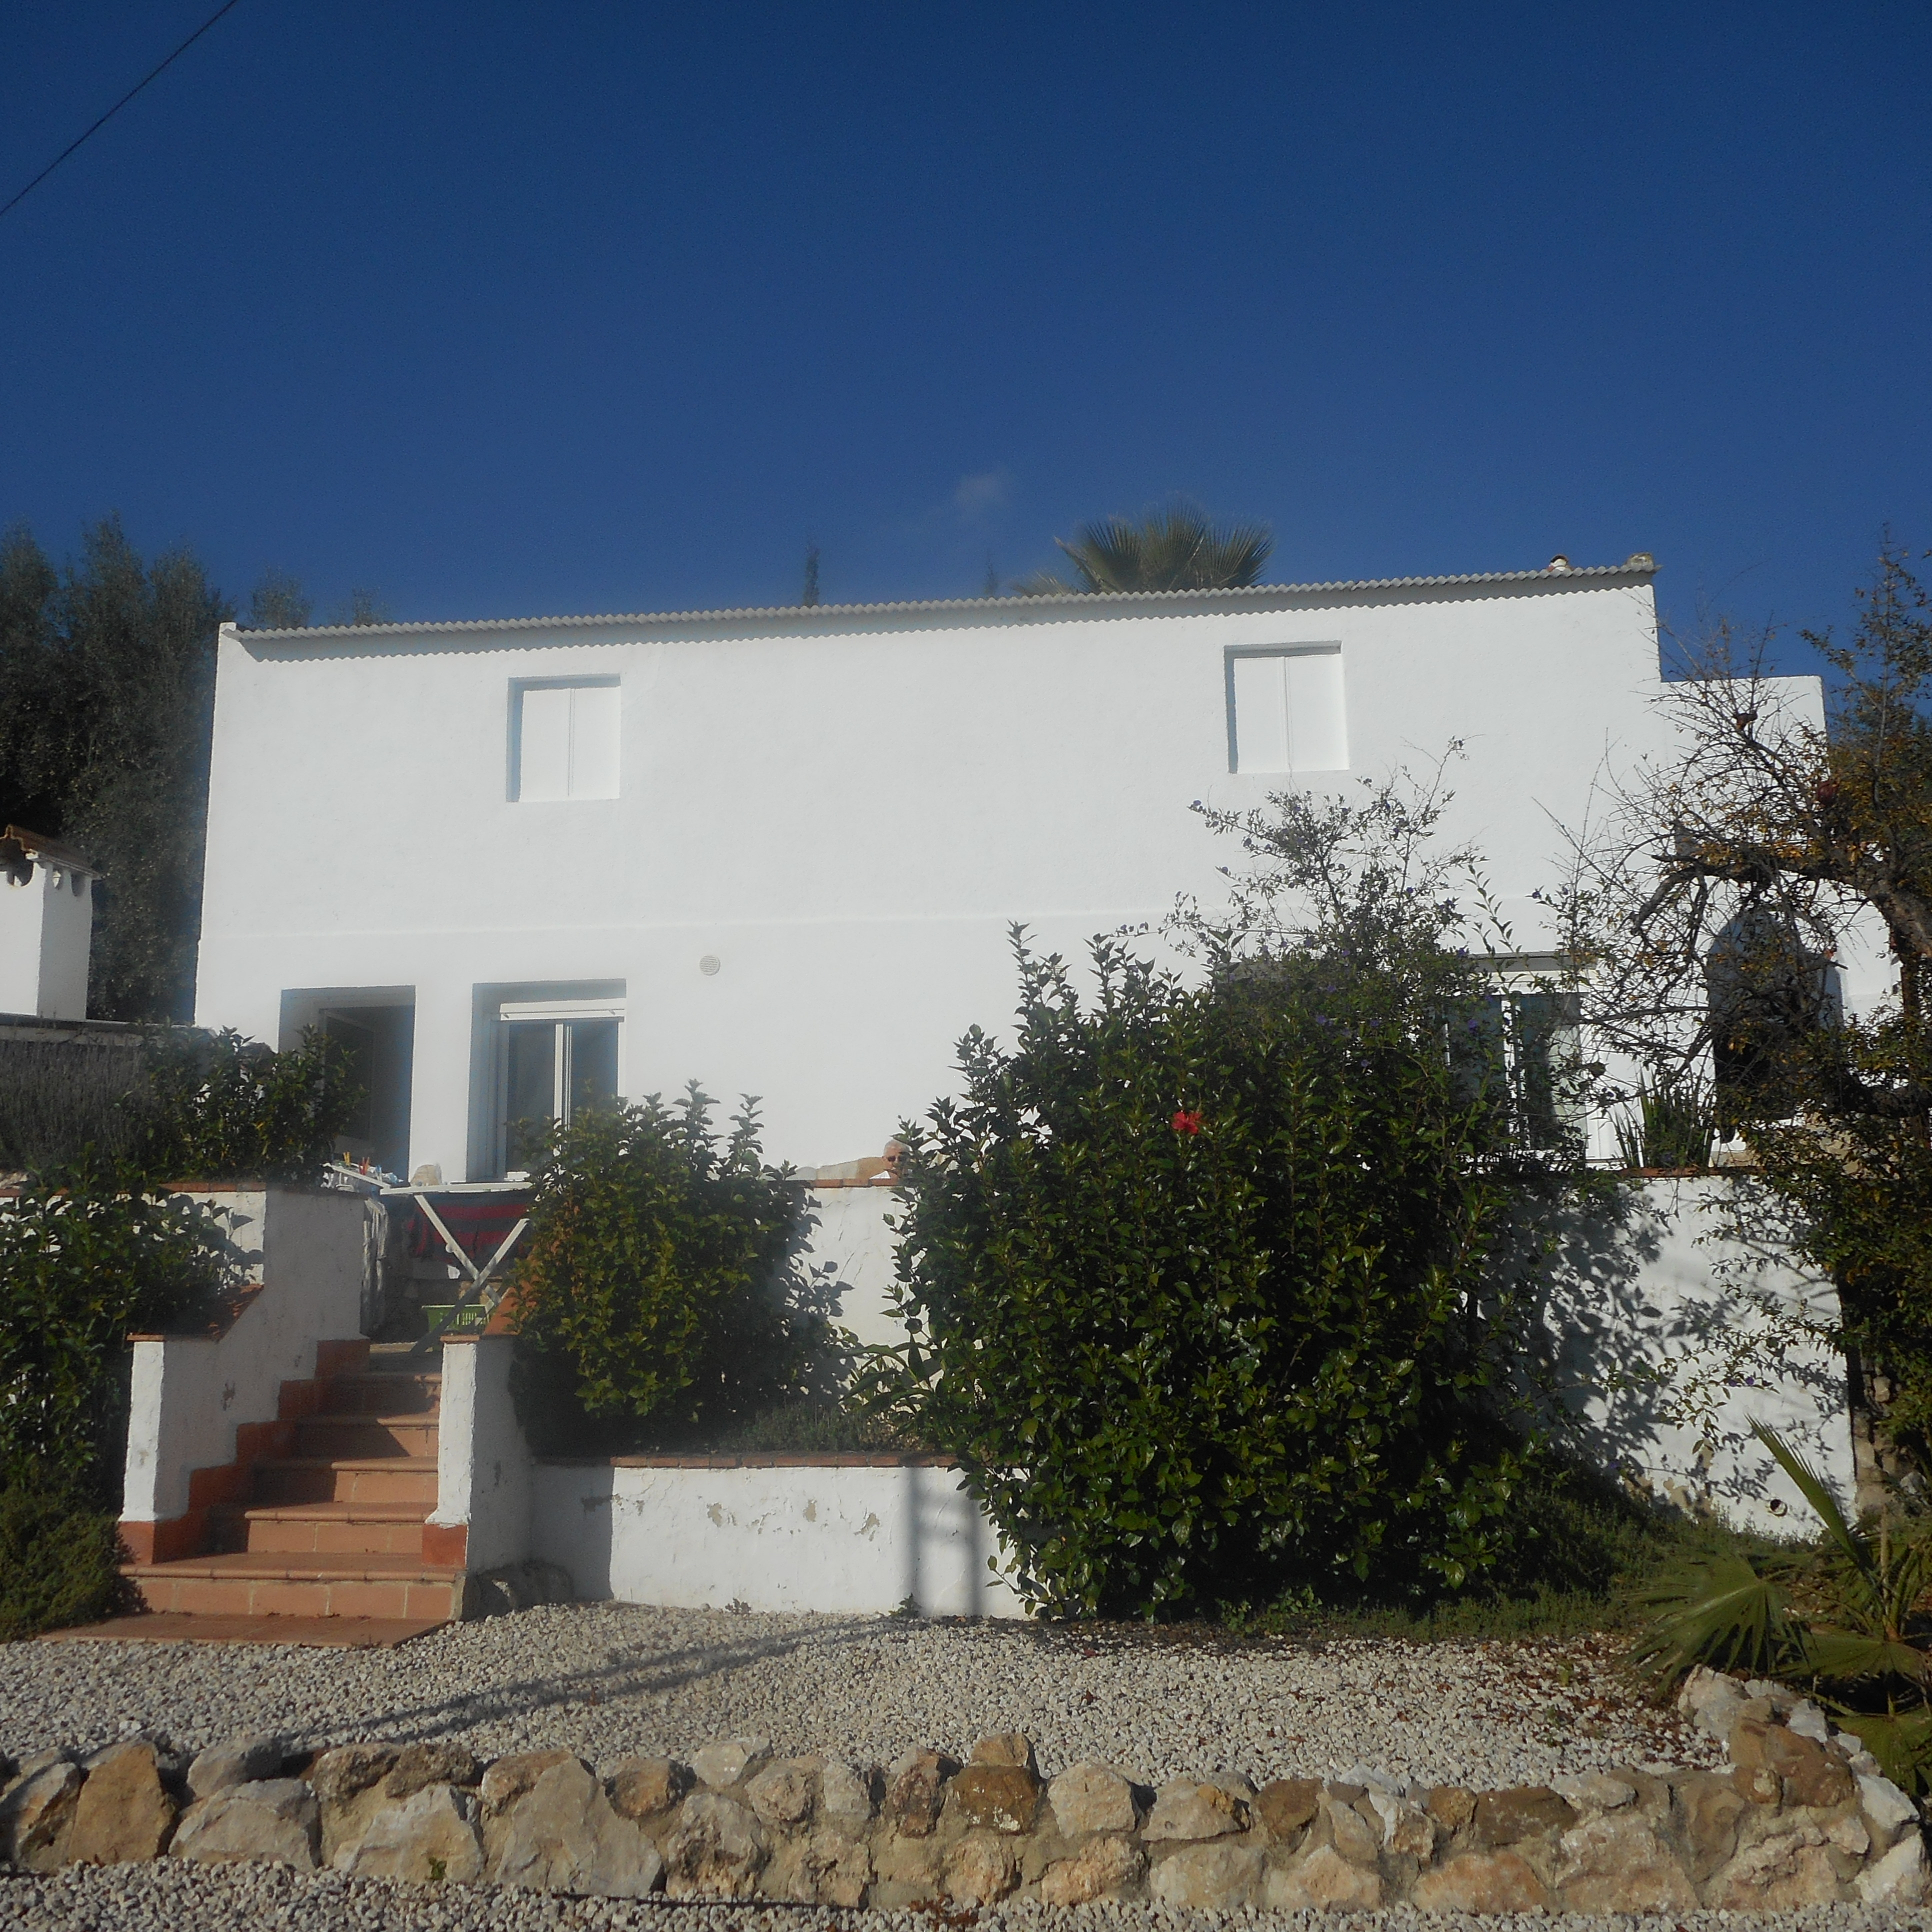 4 BED FINCA IN THE AREA OF MONDRON-PERIANA FOR SALE